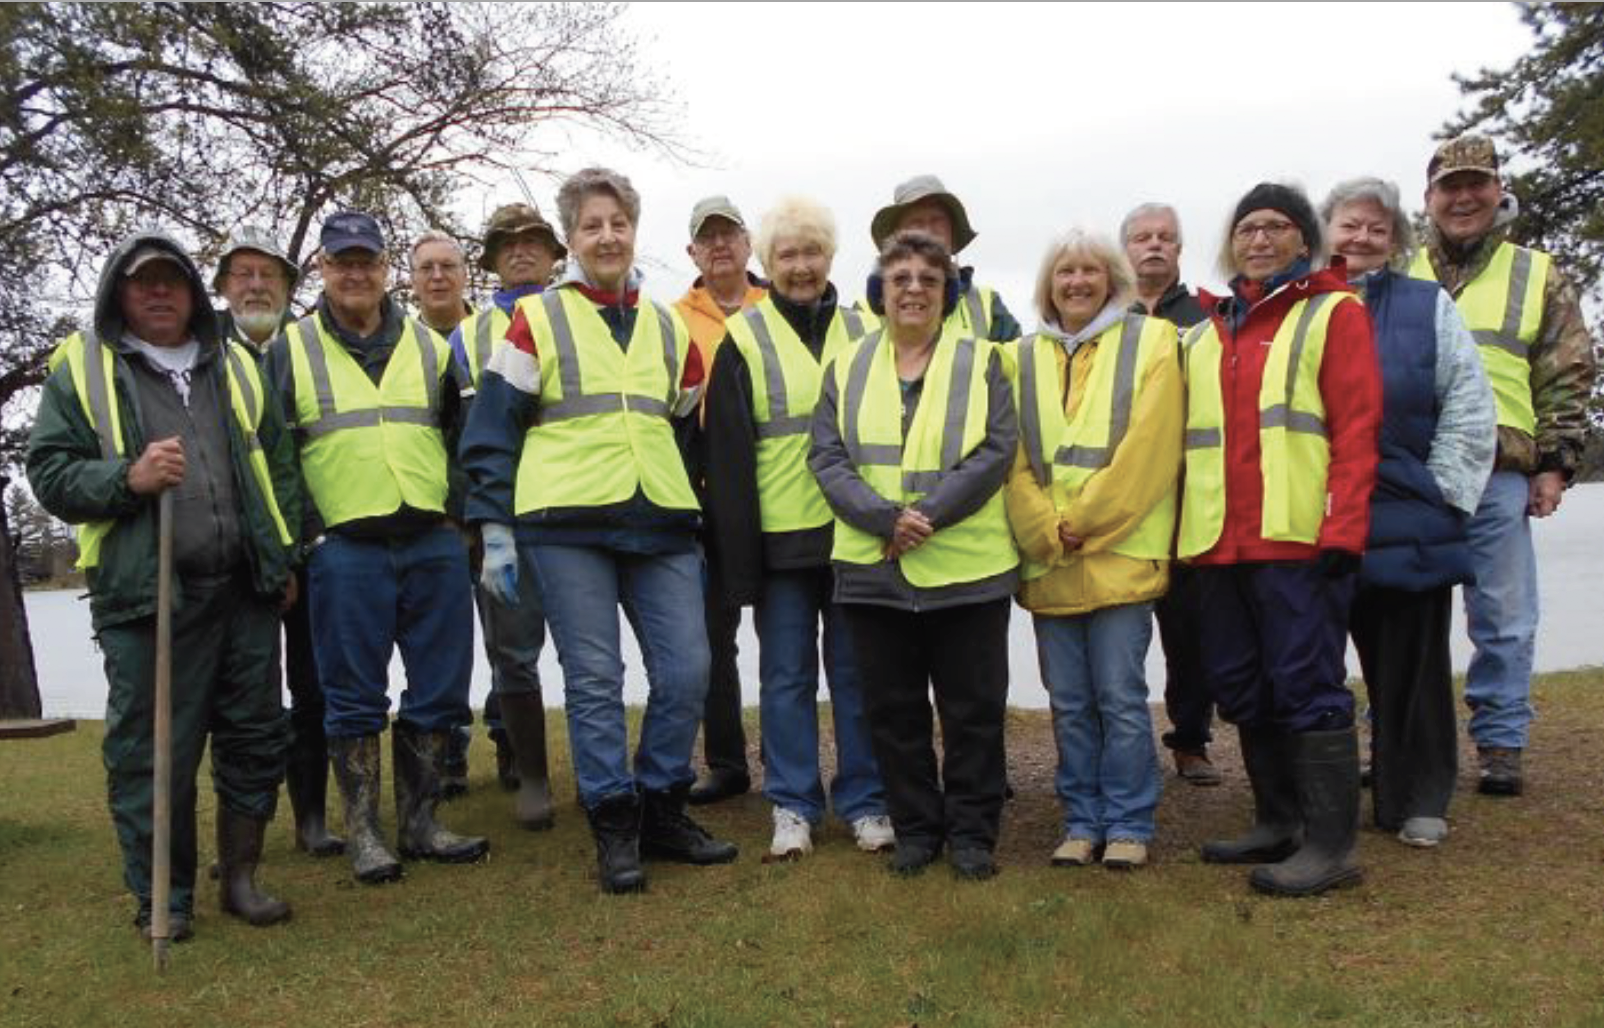 Even though the May 18 Road Clean-Up day was cool and rainy, the 15 volunteers stayed warm by enjoying hot coffee and rolls (donated by LLPOA member Mike Paulbeck, Paulbeck's County Market) before heading out to pick up trash along Hwy. 81 and 28. Thank you volunteers for braving the elements to help keep the environment around Lone Lake beautiful! Participants included Fred Lane, Dick Preiner, Jerry Nelson, Linda and Zint Kics, Mustafa Bulut, Walt and Dianne Weisser, Peggy Bragelman, David Scott, Jennifer O'Neill, Linda Syzmanski, Jim Benda and Karen and Steve Frazier.